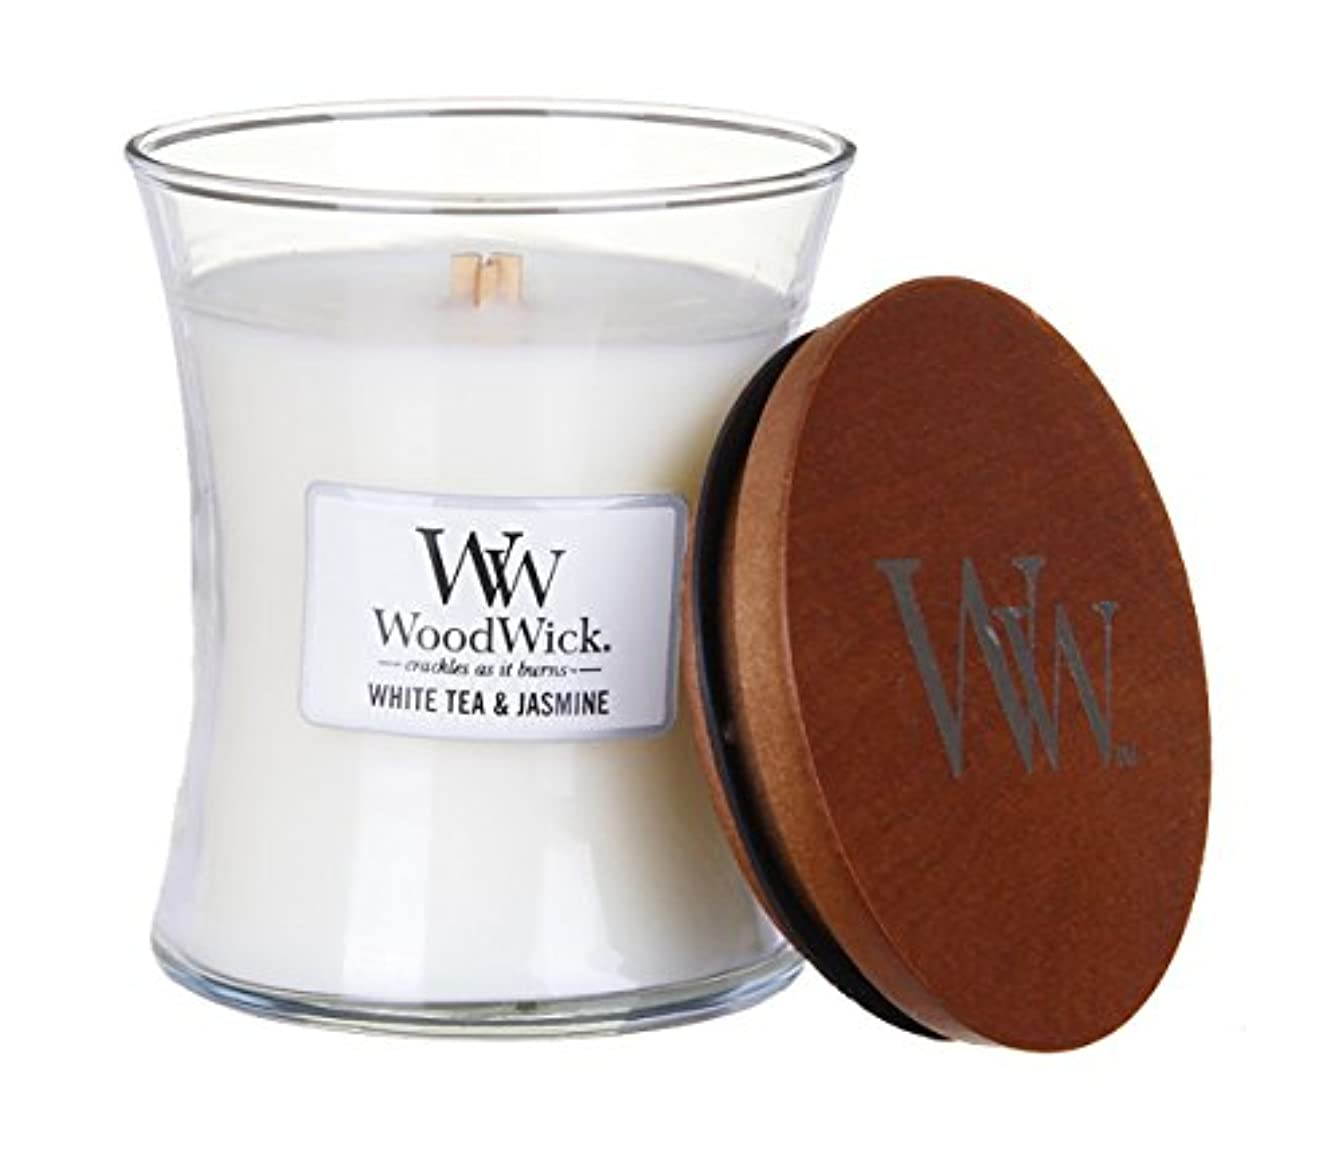 スキム数値二ホワイトTea Jasmine – WoodWick 10oz Medium Jar Candle Burns 100時間